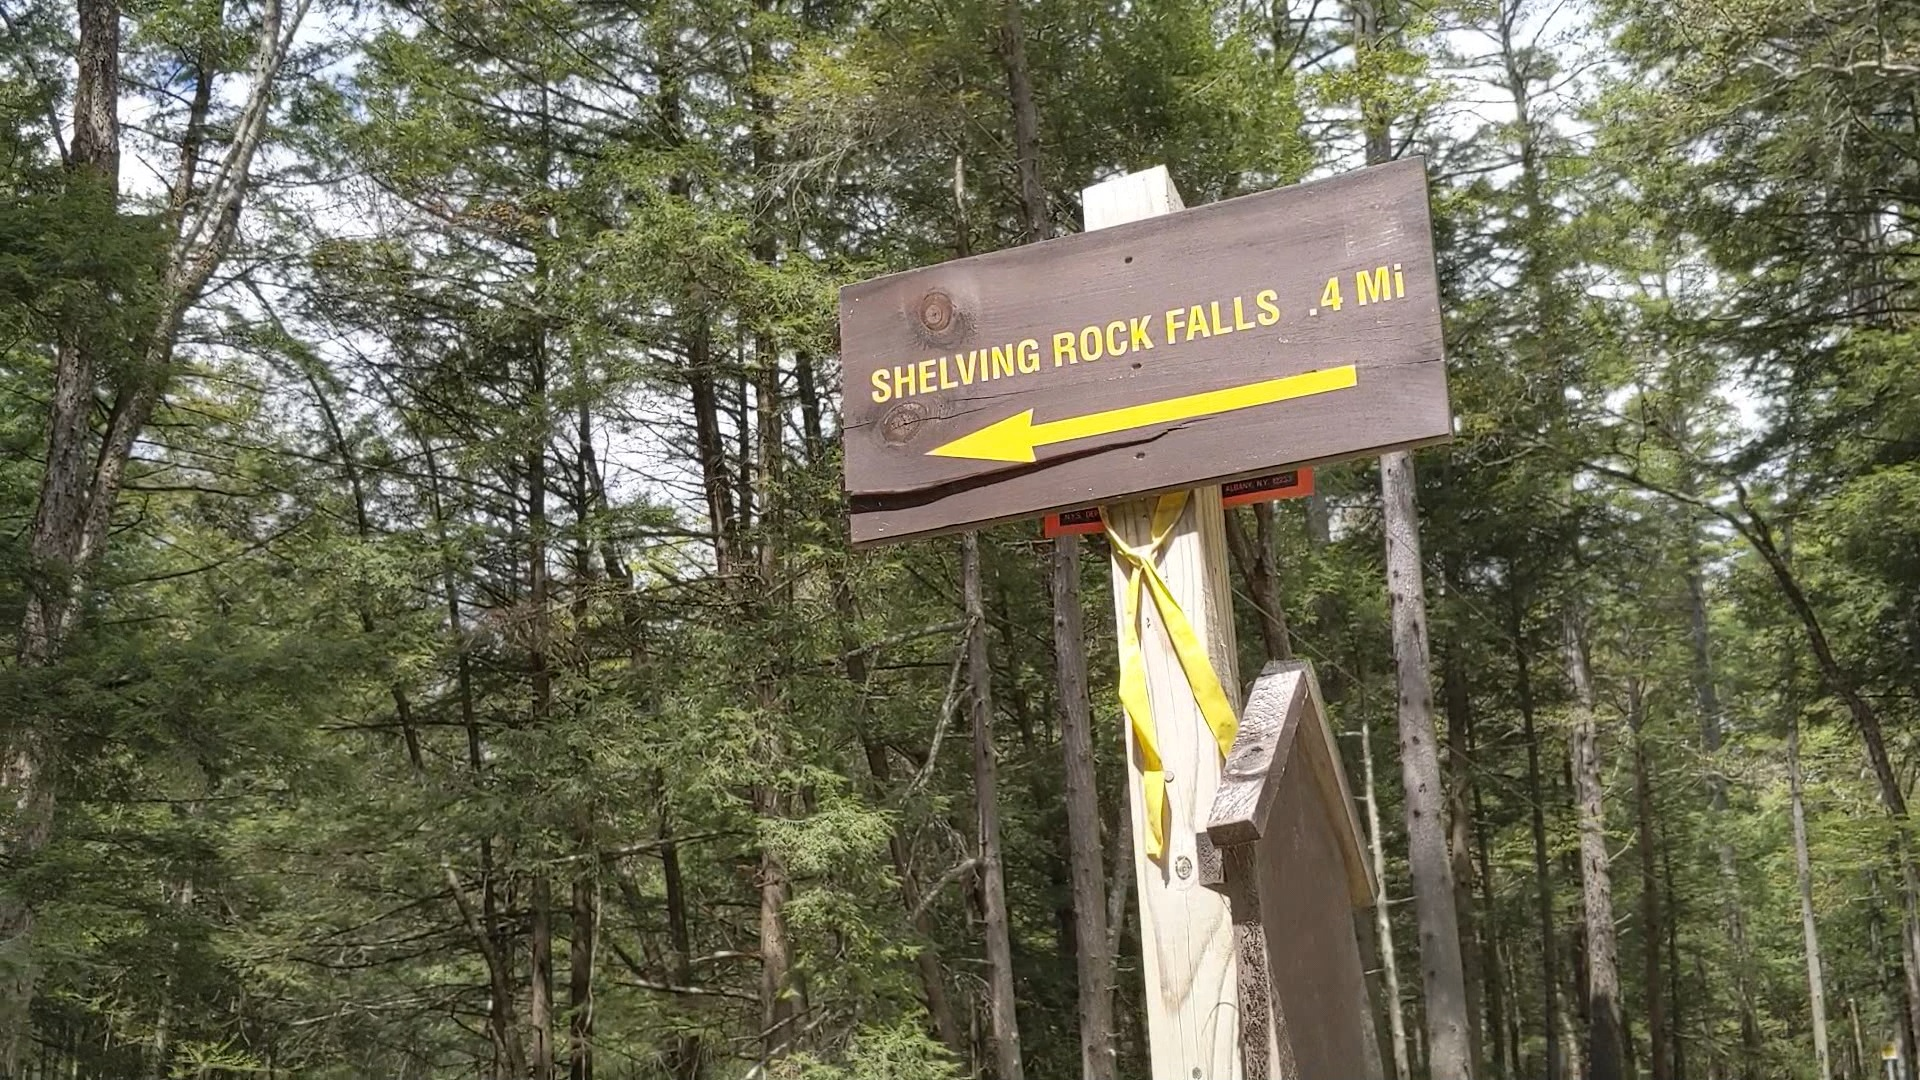 shelving rock falls sign